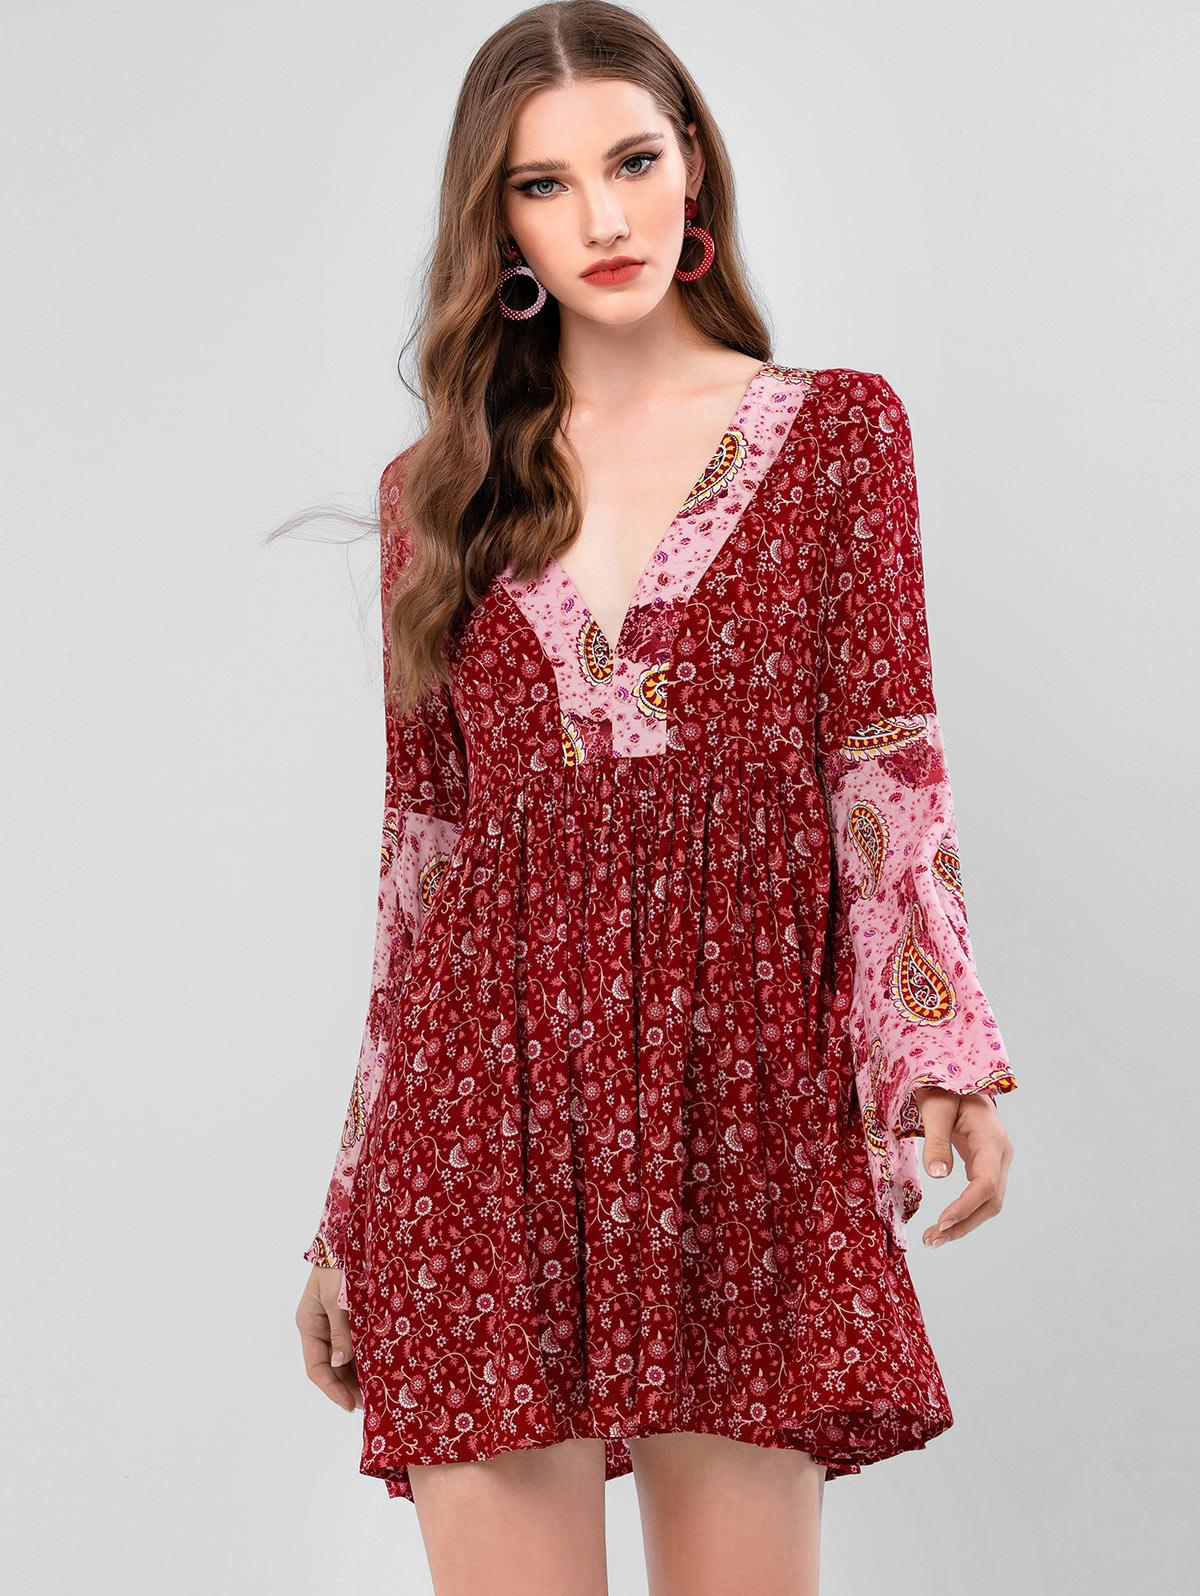 ZAFUL Floral Paisley Print Flare Sleeves A Line Dress фото